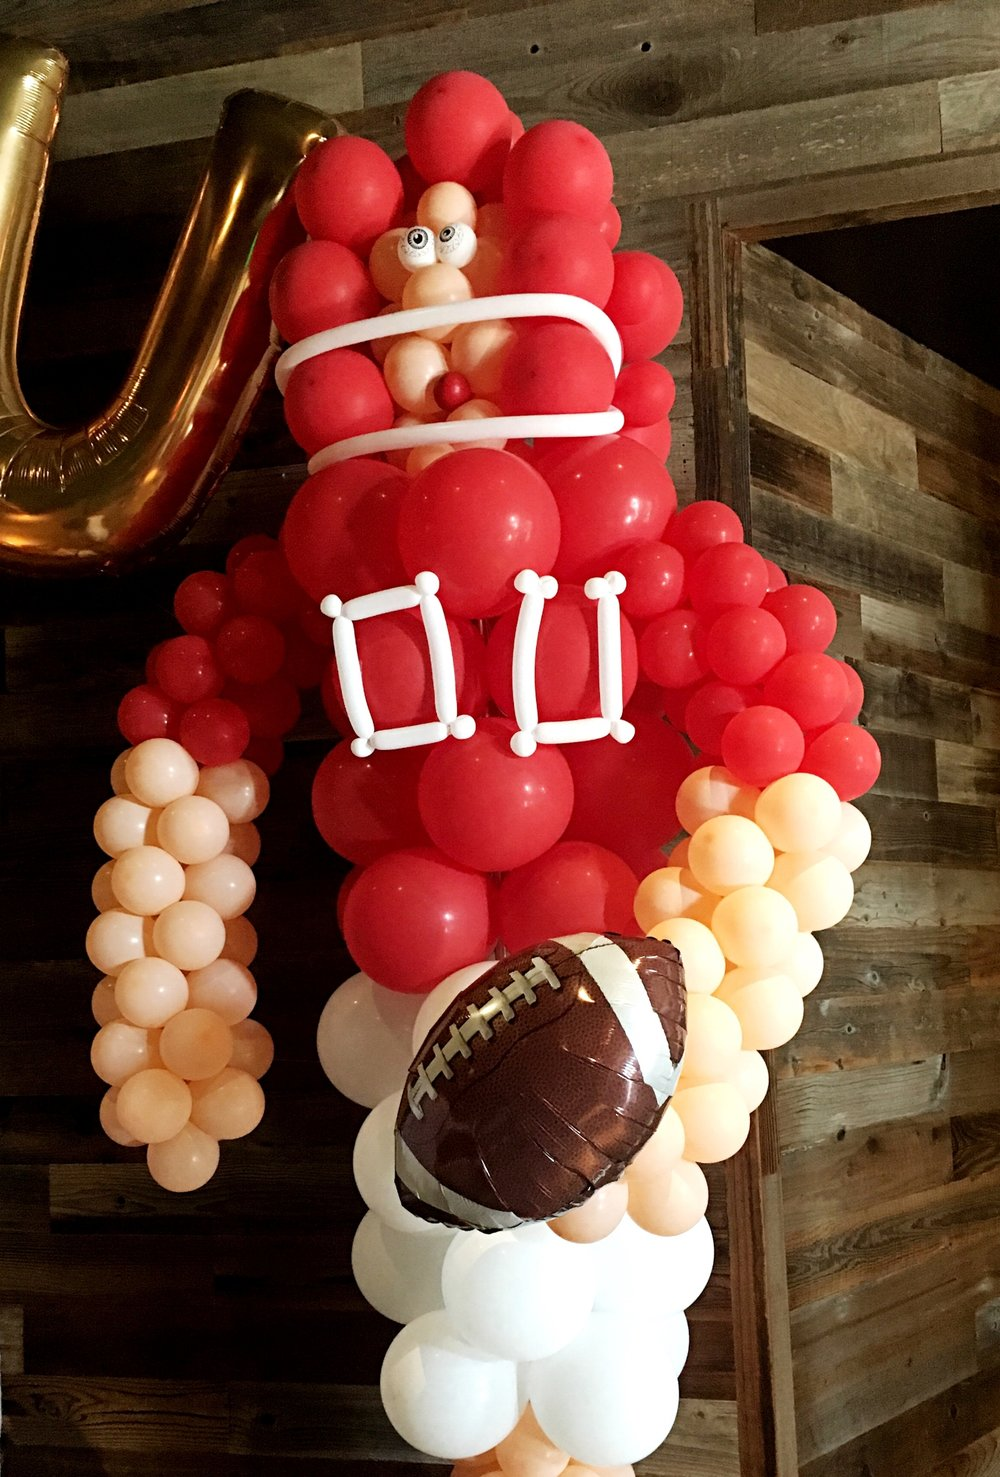 ou/tx is for sure a holiday in dallas